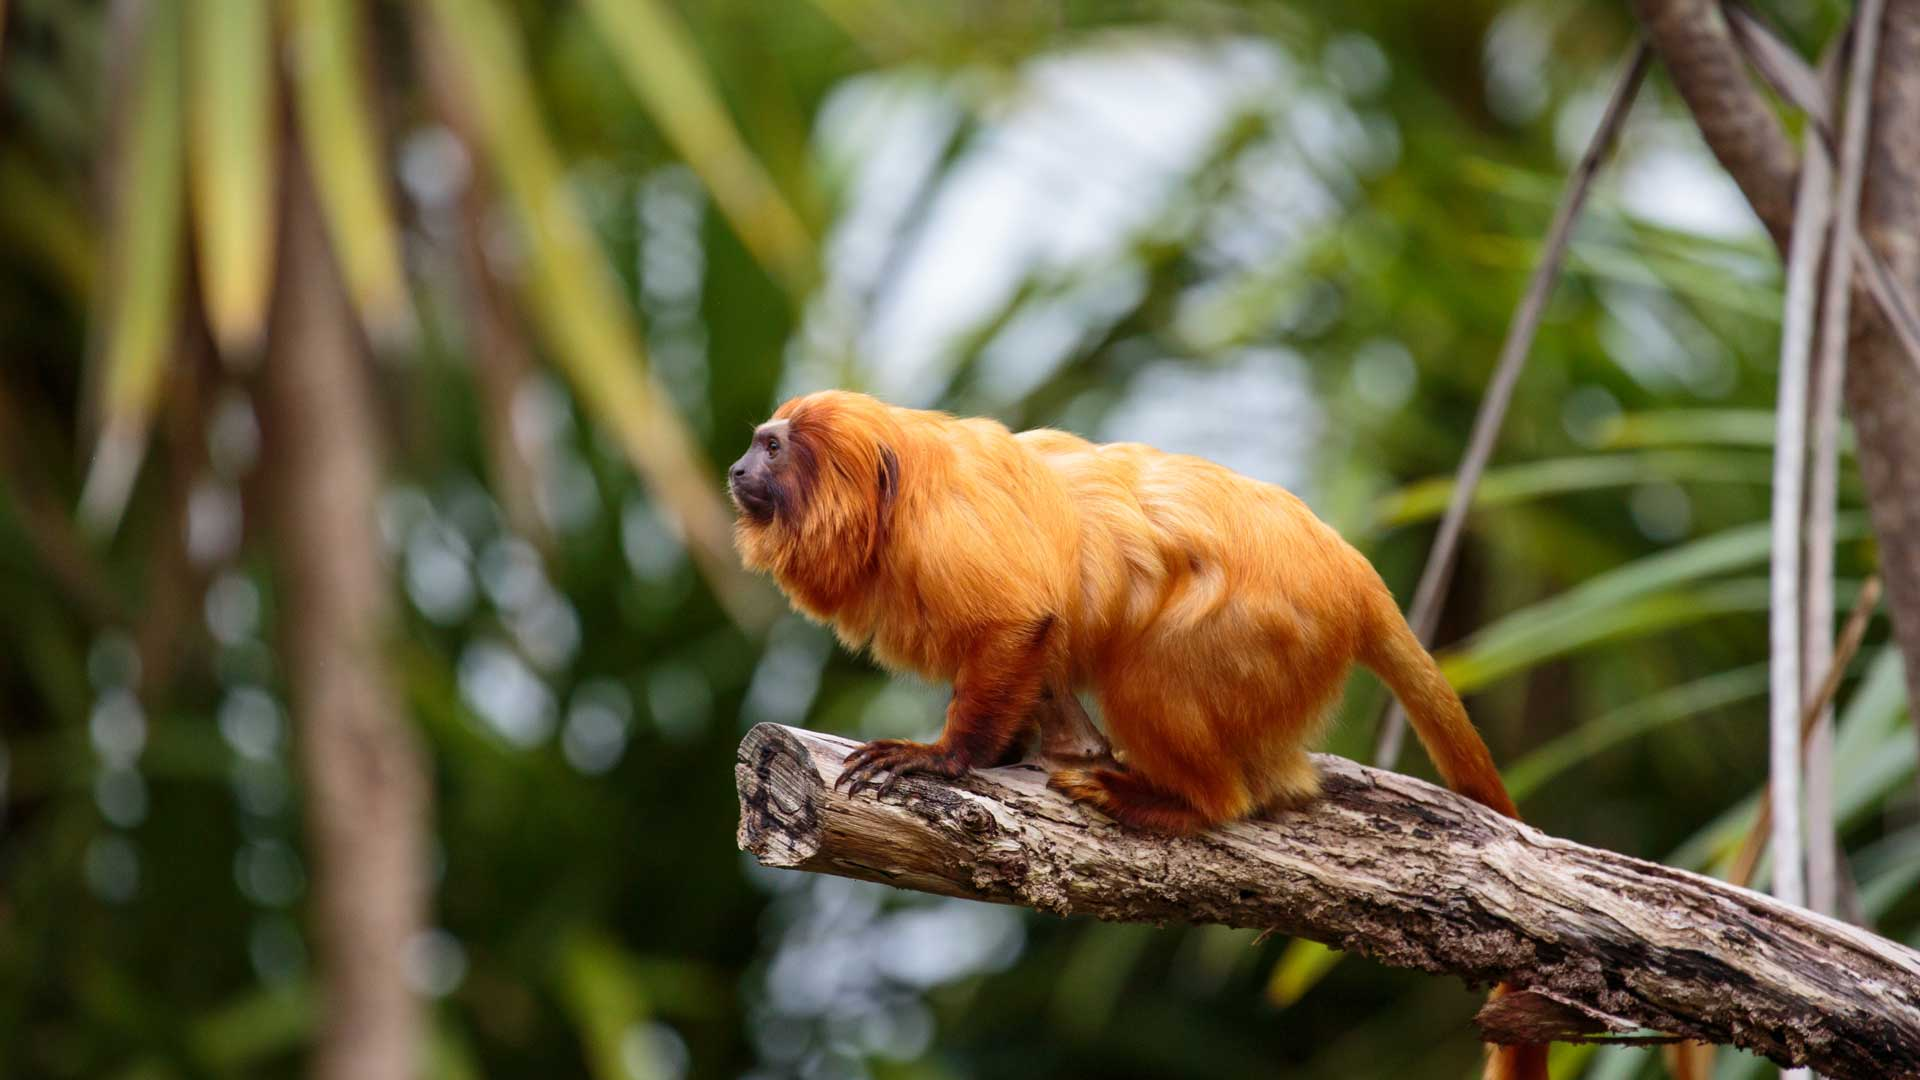 https://rfacdn.nz/zoo/assets/media/golden-lion-tamarin-gallery-3.jpg